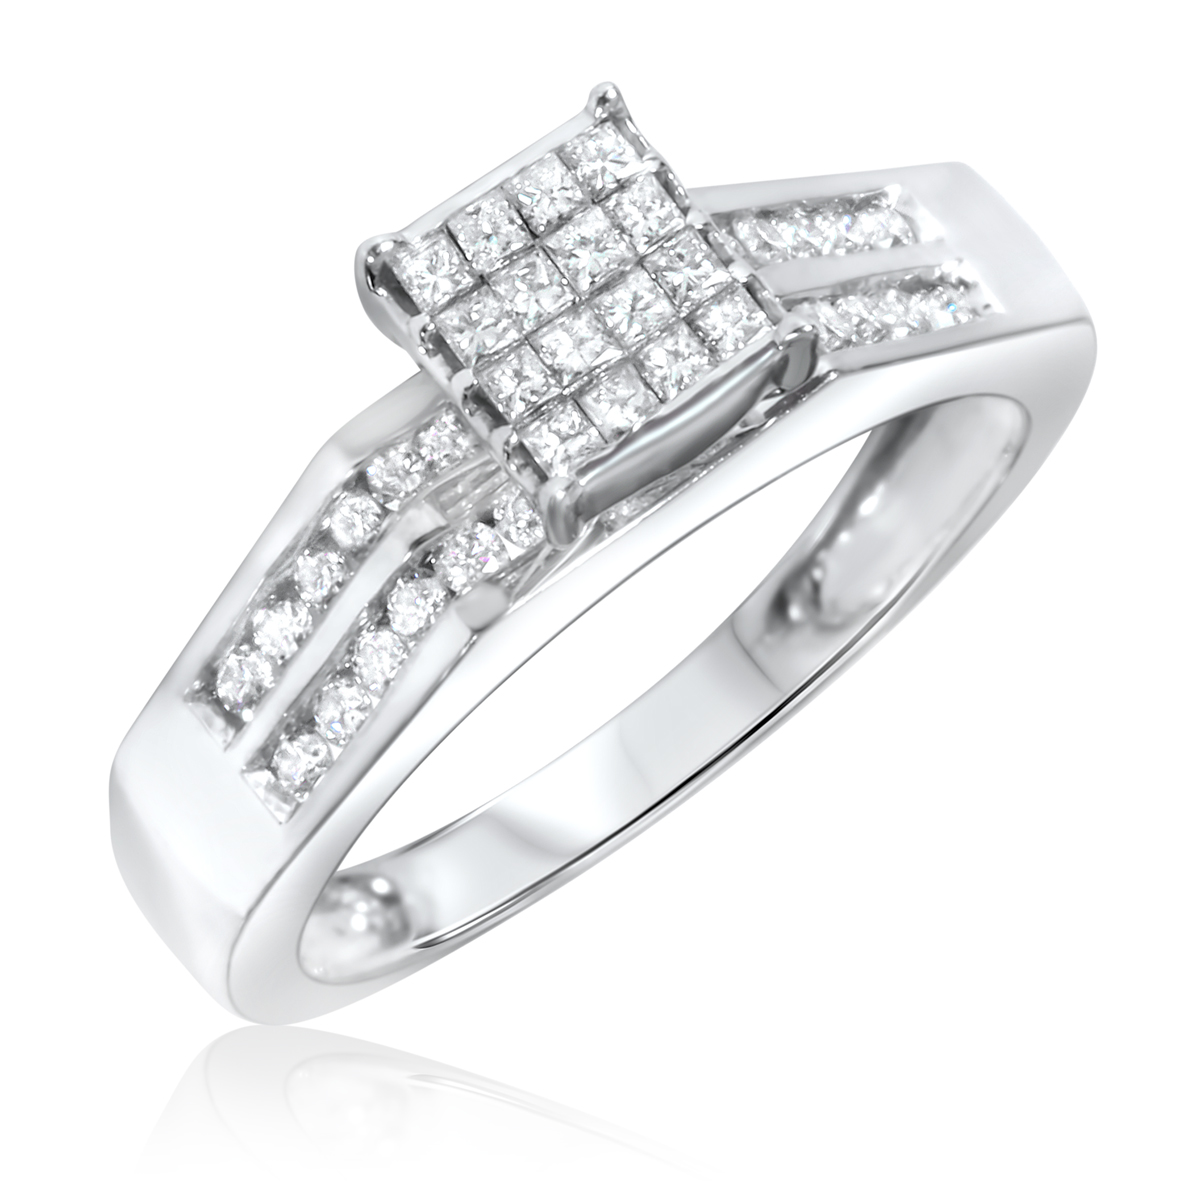 1 carat diamond trio wedding ring set 14k white gold my trio rings bt111w14k - White Gold Wedding Rings Sets